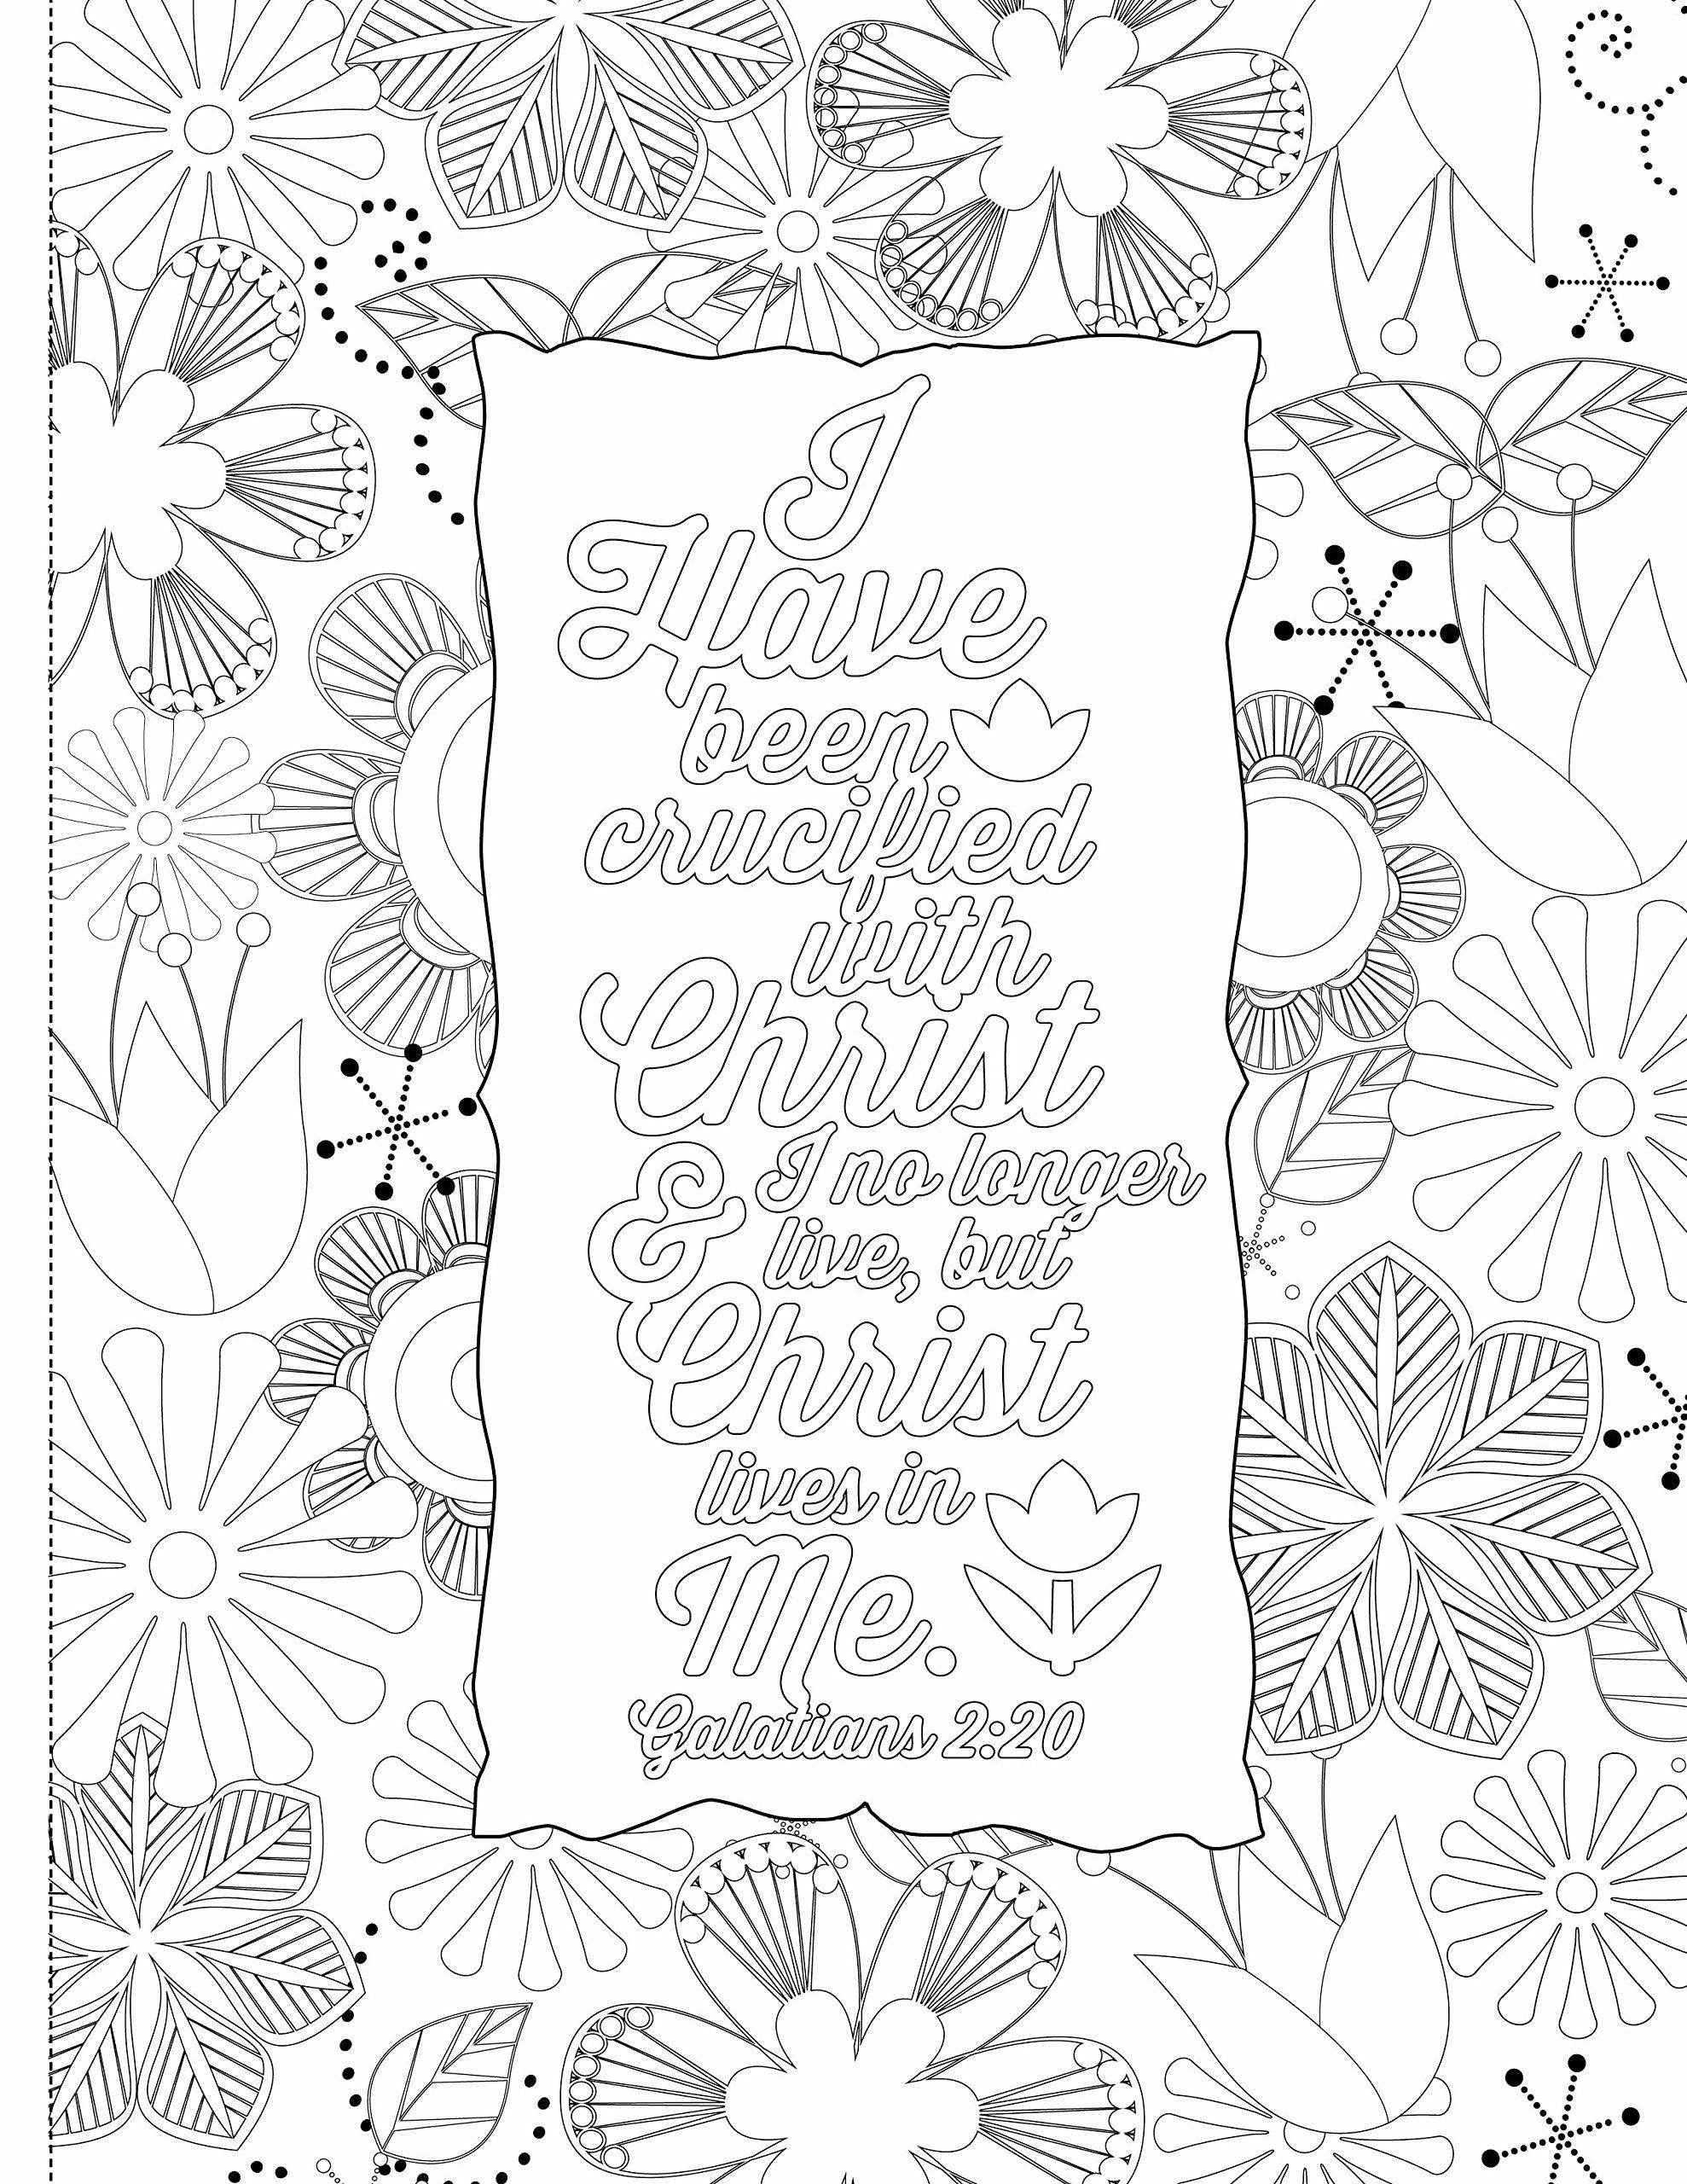 Inspiring Words 30 Verses From The Bible You Can Color Zondervan 9780310757283 Amazon C Bible Coloring Pages Bible Verse Coloring Bible Verse Coloring Page